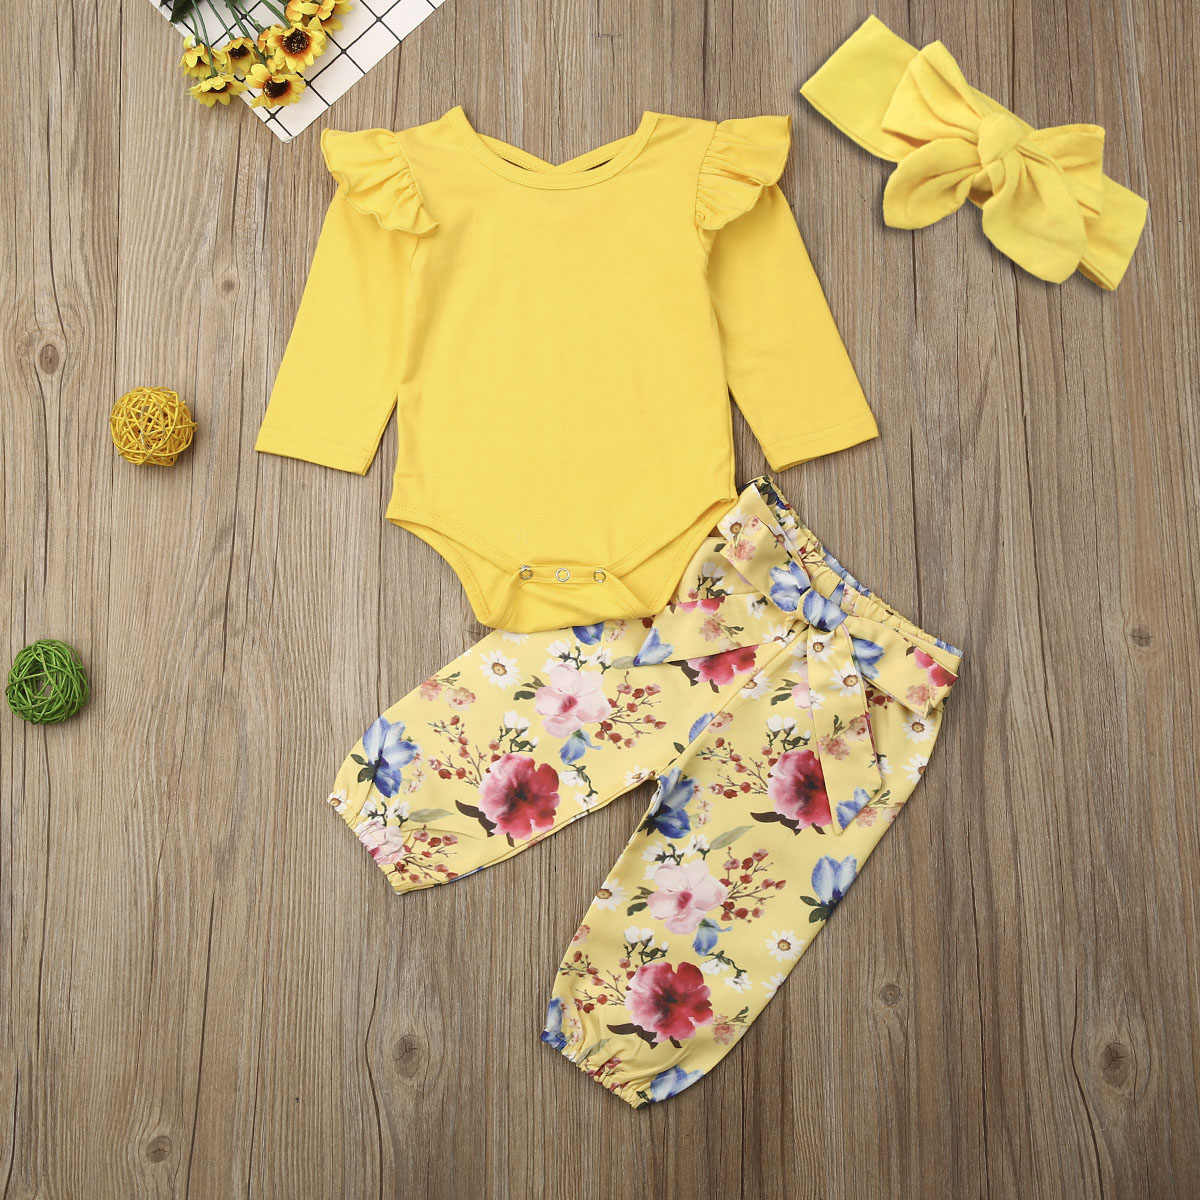 Pudcoco Newborn Baby Girl Clothes Solid Color Fly Sleeve Cotton Romper Tops Flower Print Long Pants Headband 3Pcs Outfits Set